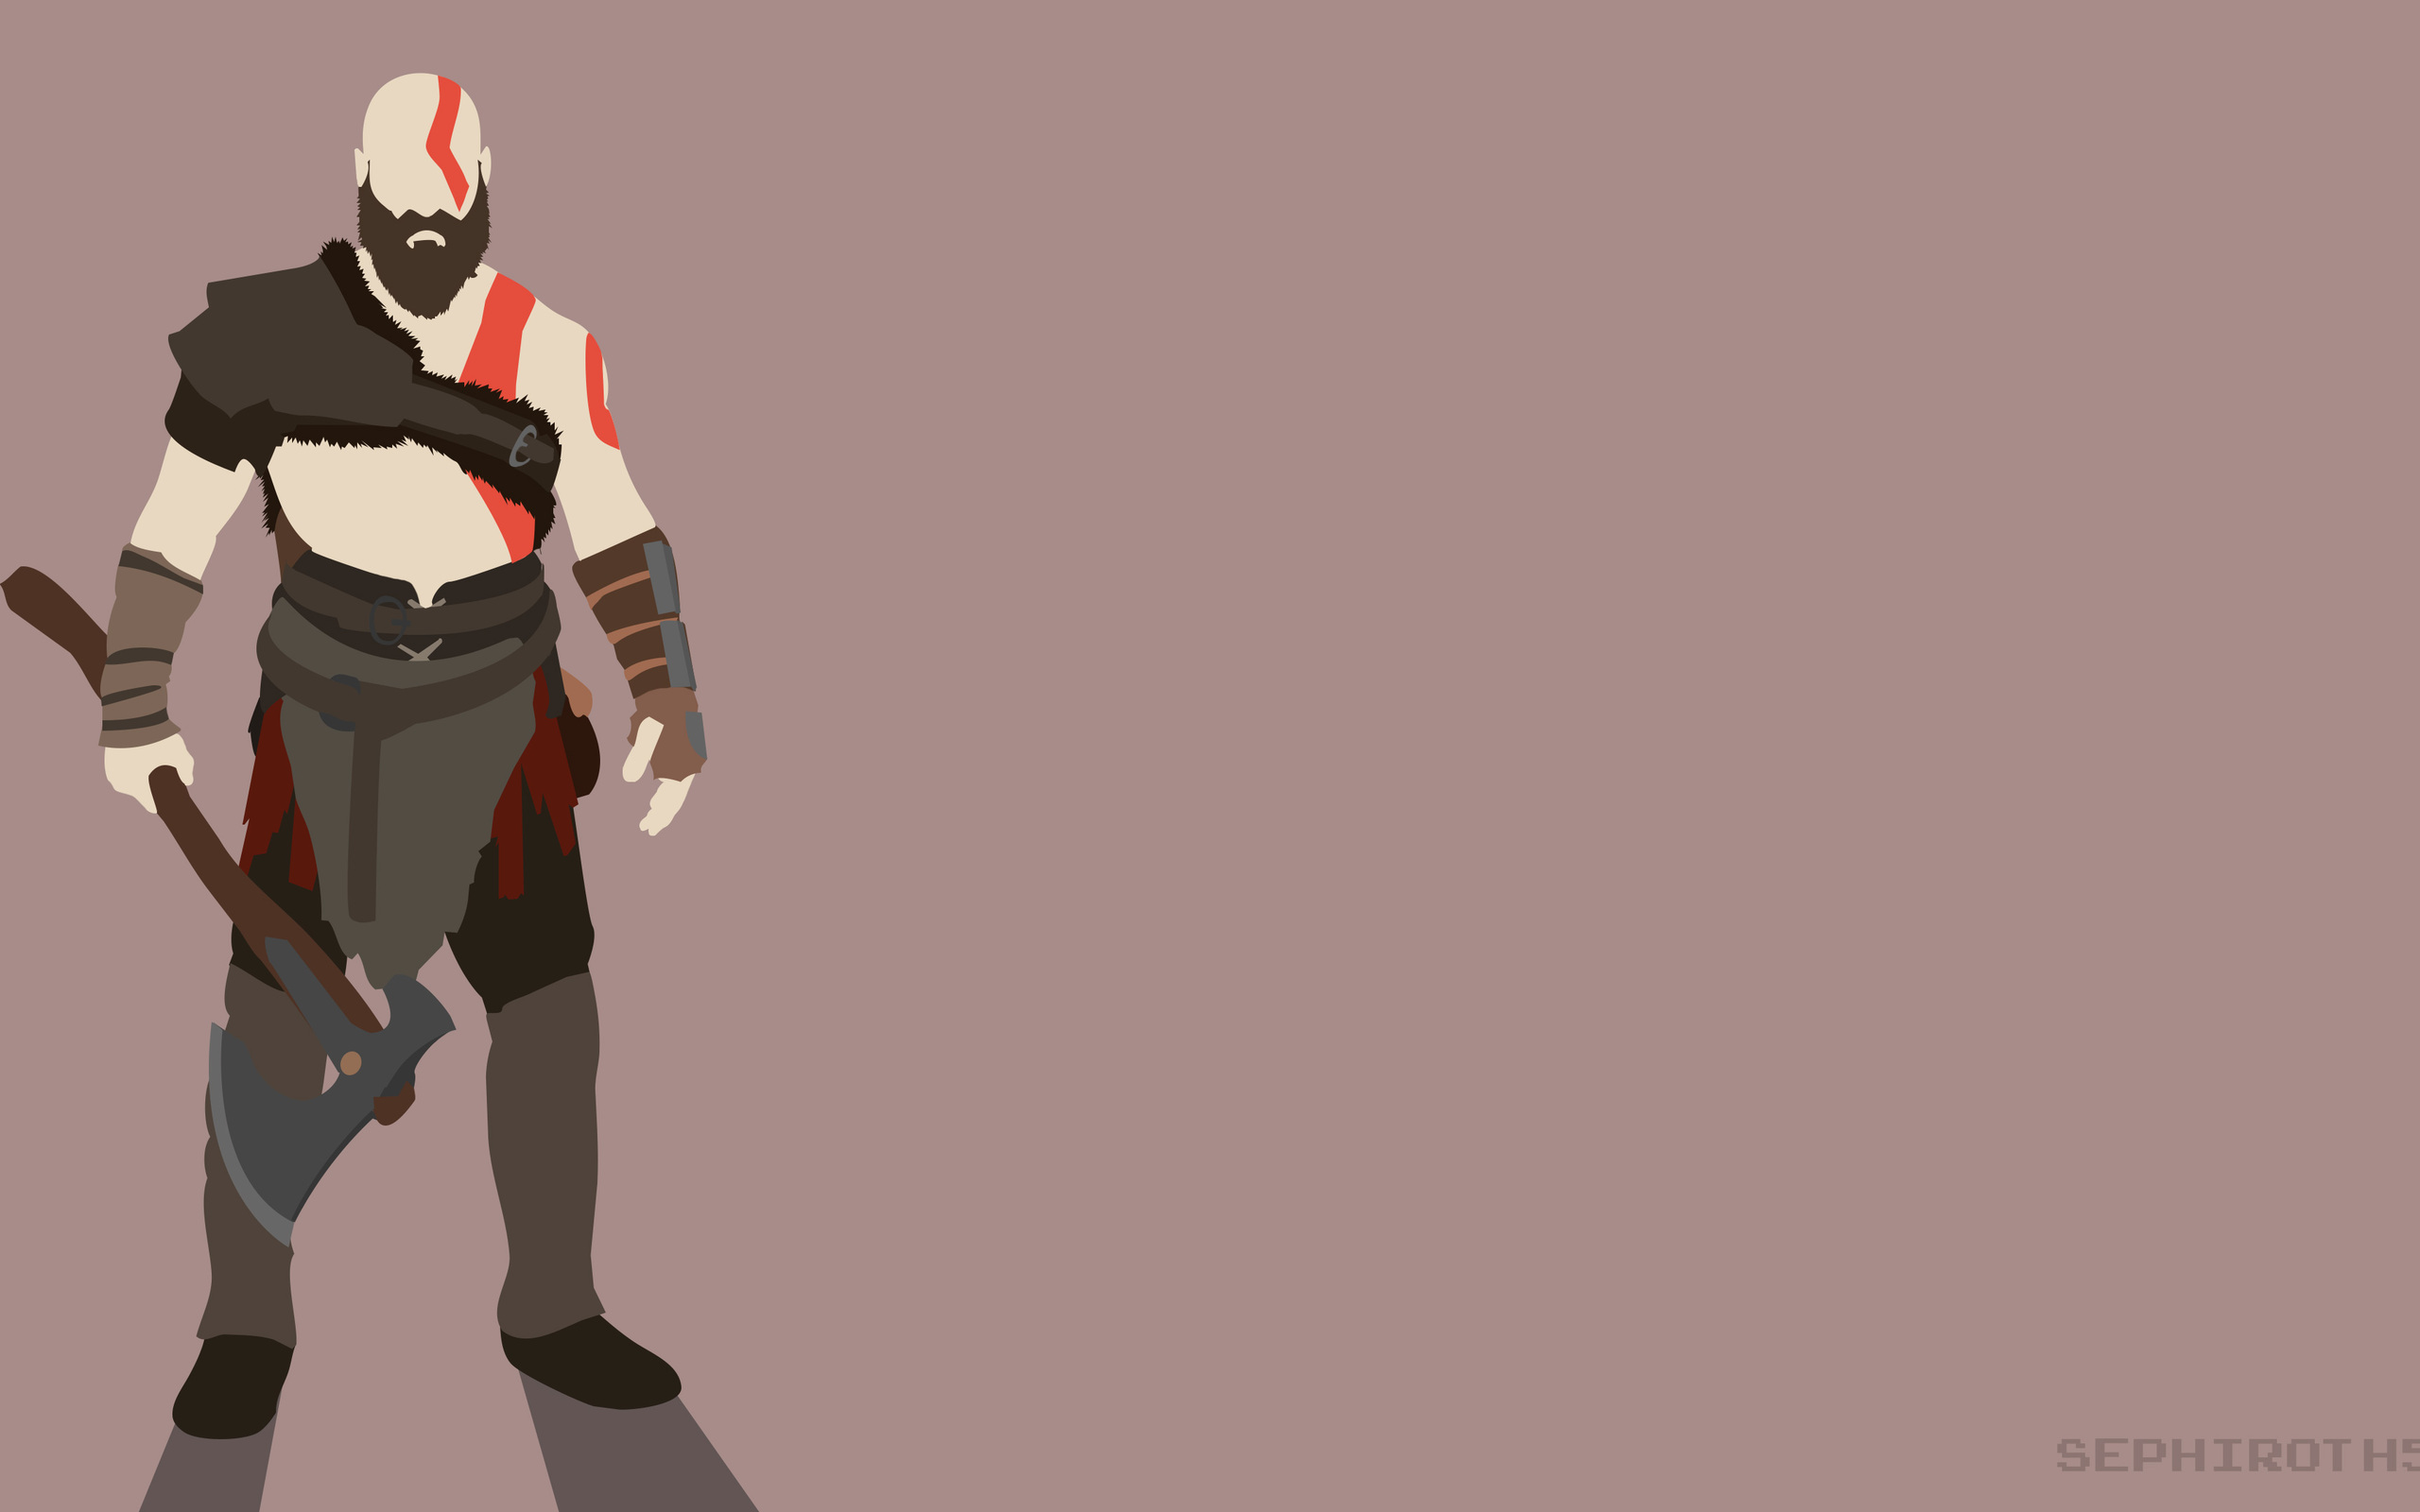 kratos-god-of-war-minimalist-05.jpg